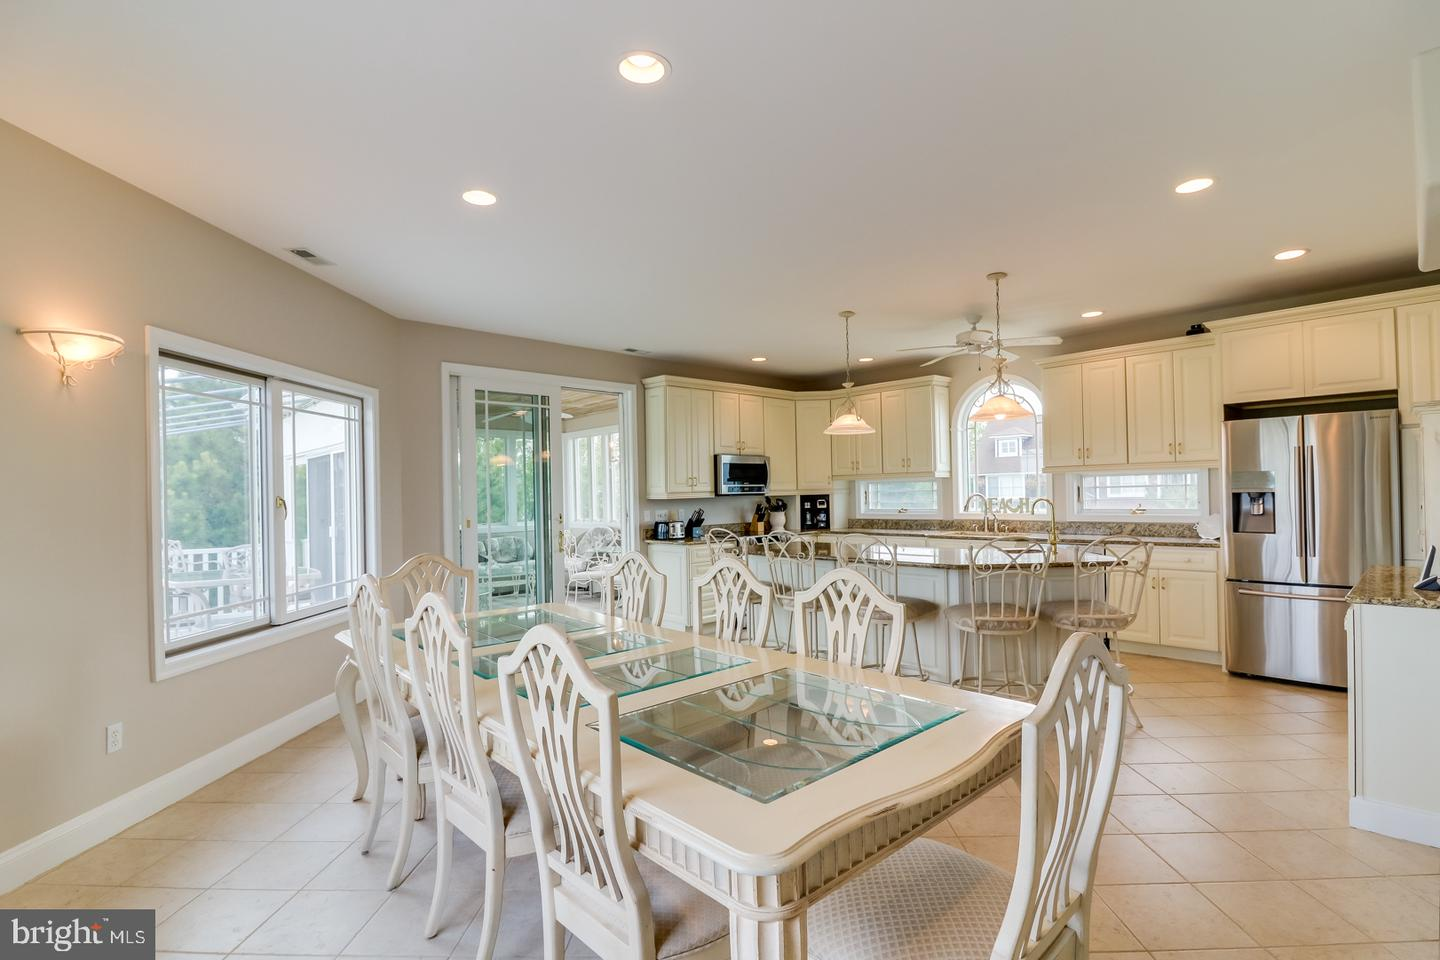 DESU144366-301896699271-2019-08-01-12-58-35 305 Le Pointe Dr | North Bethany, De Real Estate For Sale | MLS# Desu144366  - Suzanne Macnab